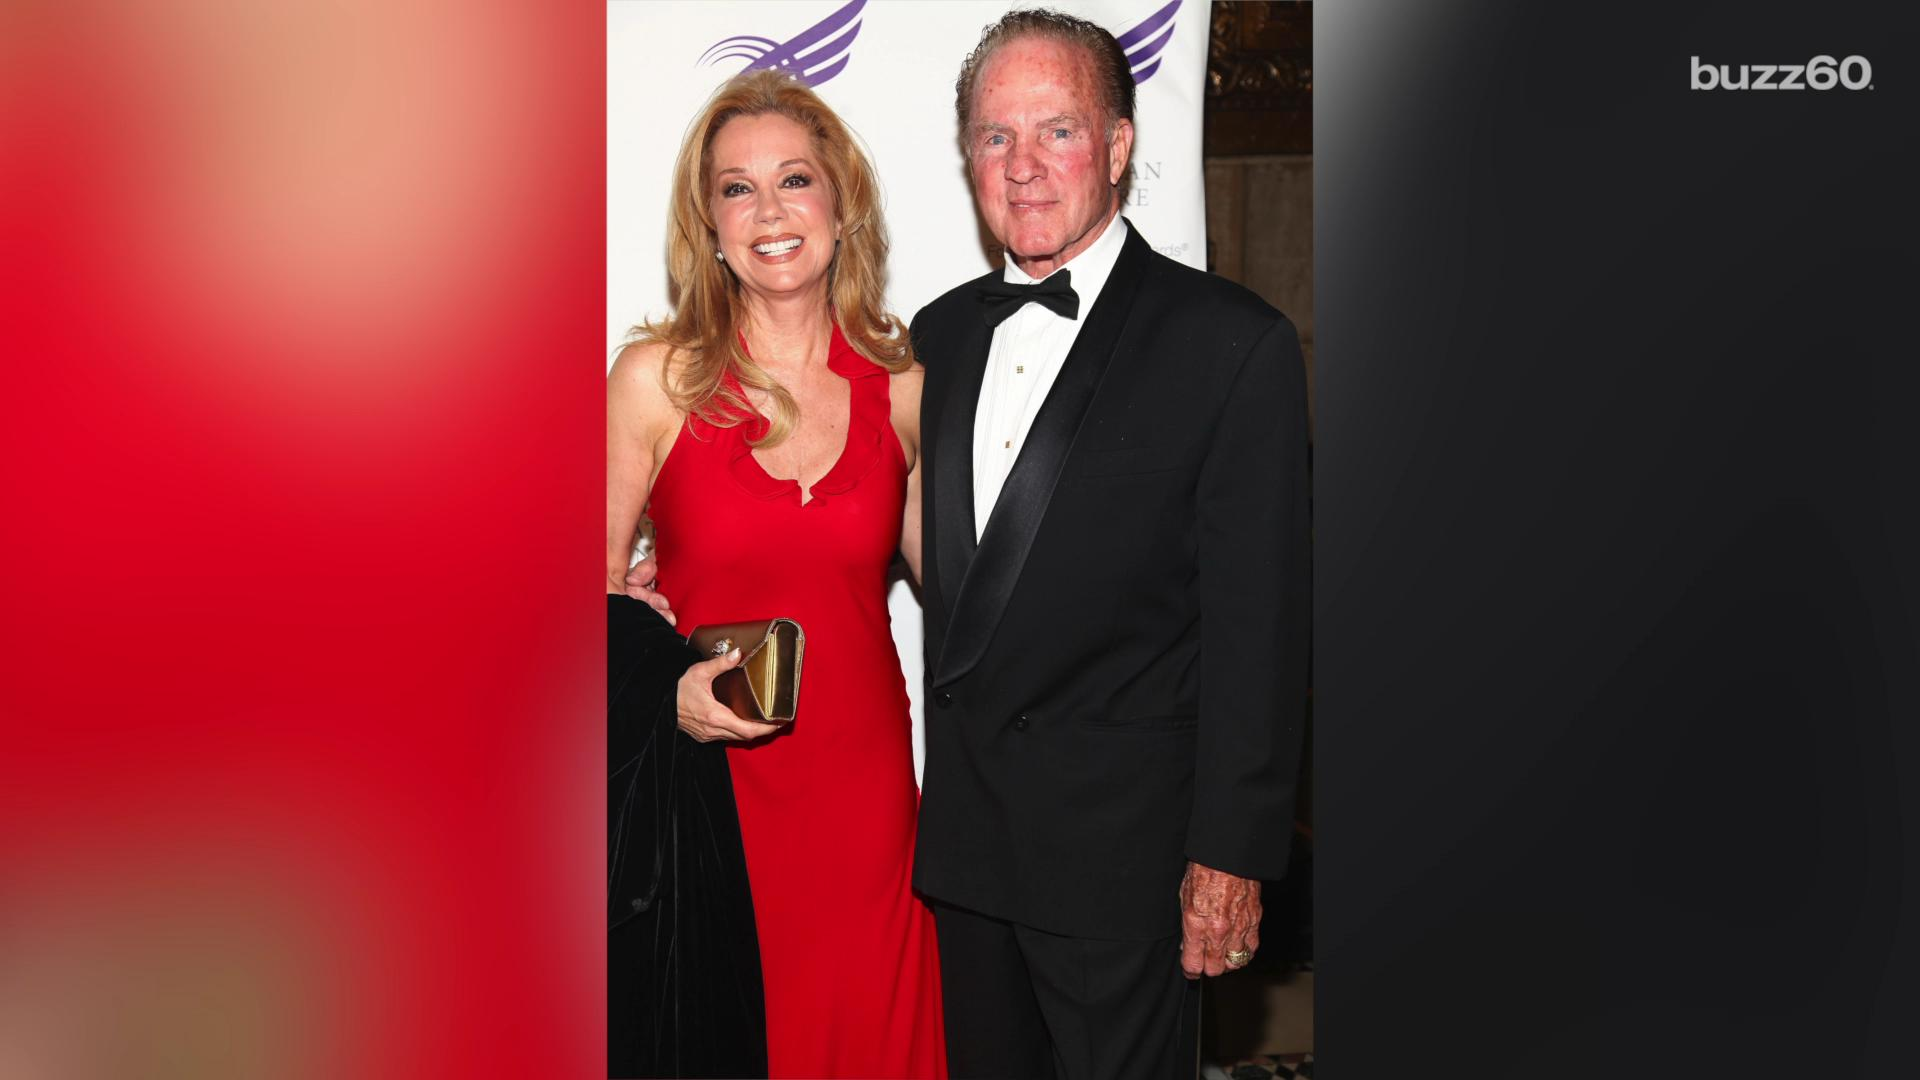 Why Kathie Lee threw a party instead of a funeral for Frank Gifford